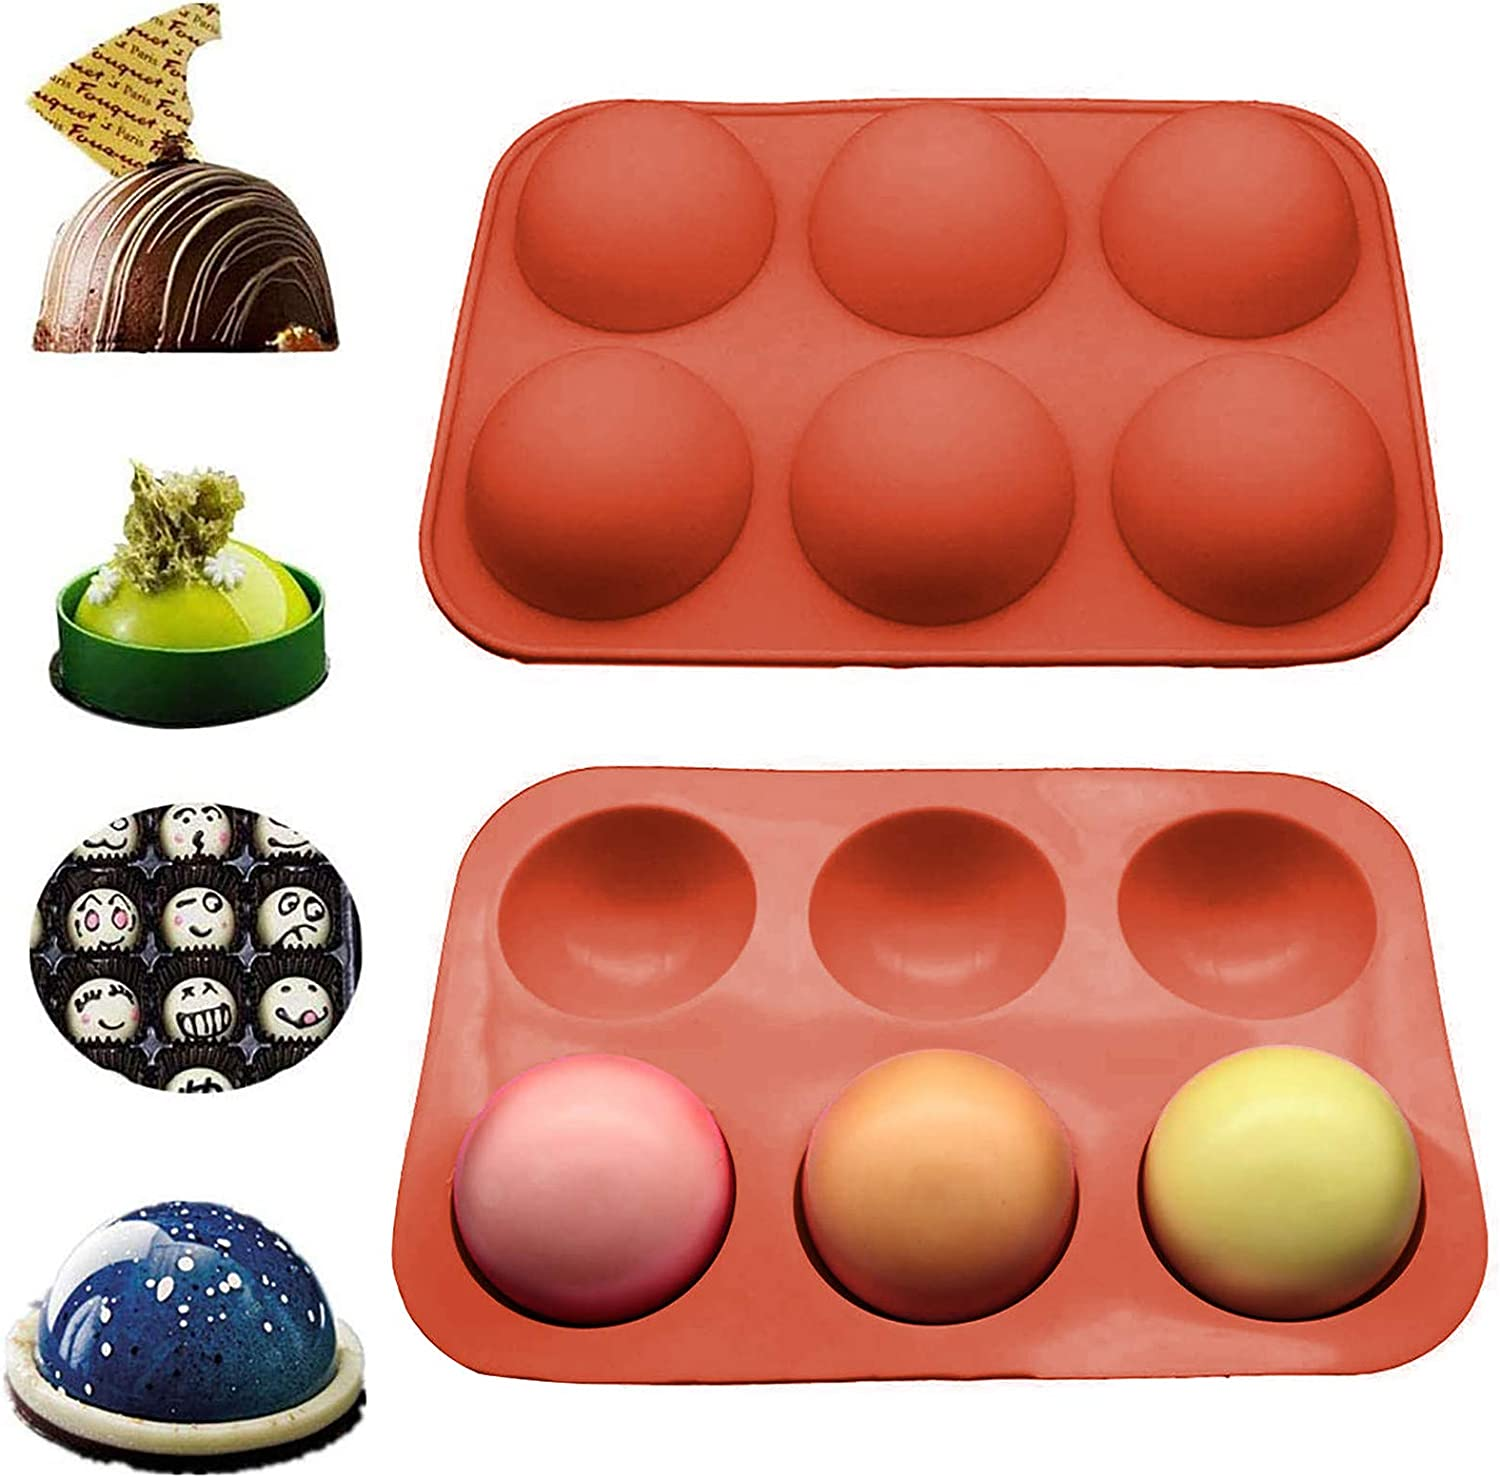 Blue-1pc Chocolate Bomb Mold Cocoa Bomb Silicone Mold Baker Mold for Hot Chocolate Silicone Molds for Chocolate Bombs 6 Holes Half Ball Sphere Silicone Pastry /& Baking Mold for DIY Baking